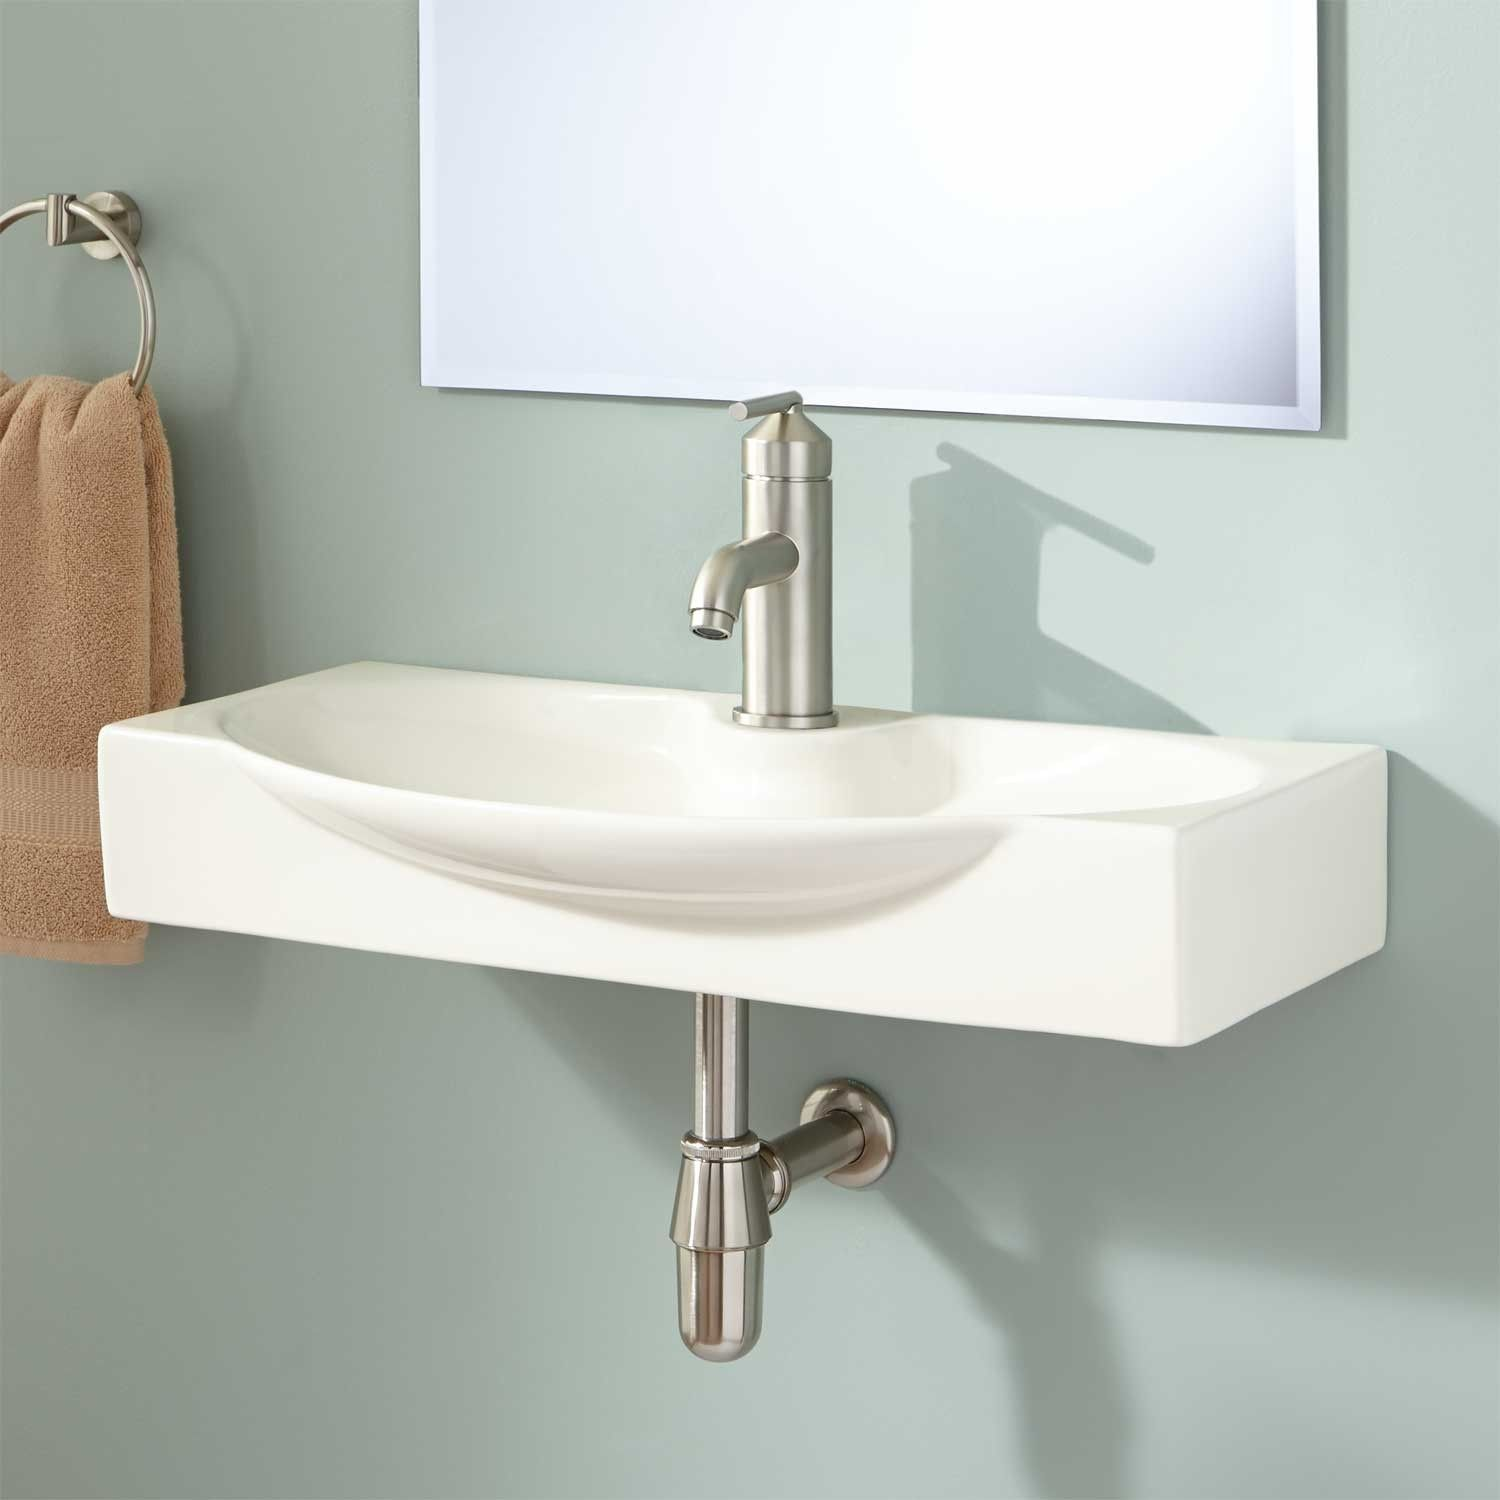 Ronan Wall Mount Bathroom Sink Wall Mount Bathroom and Bathroom